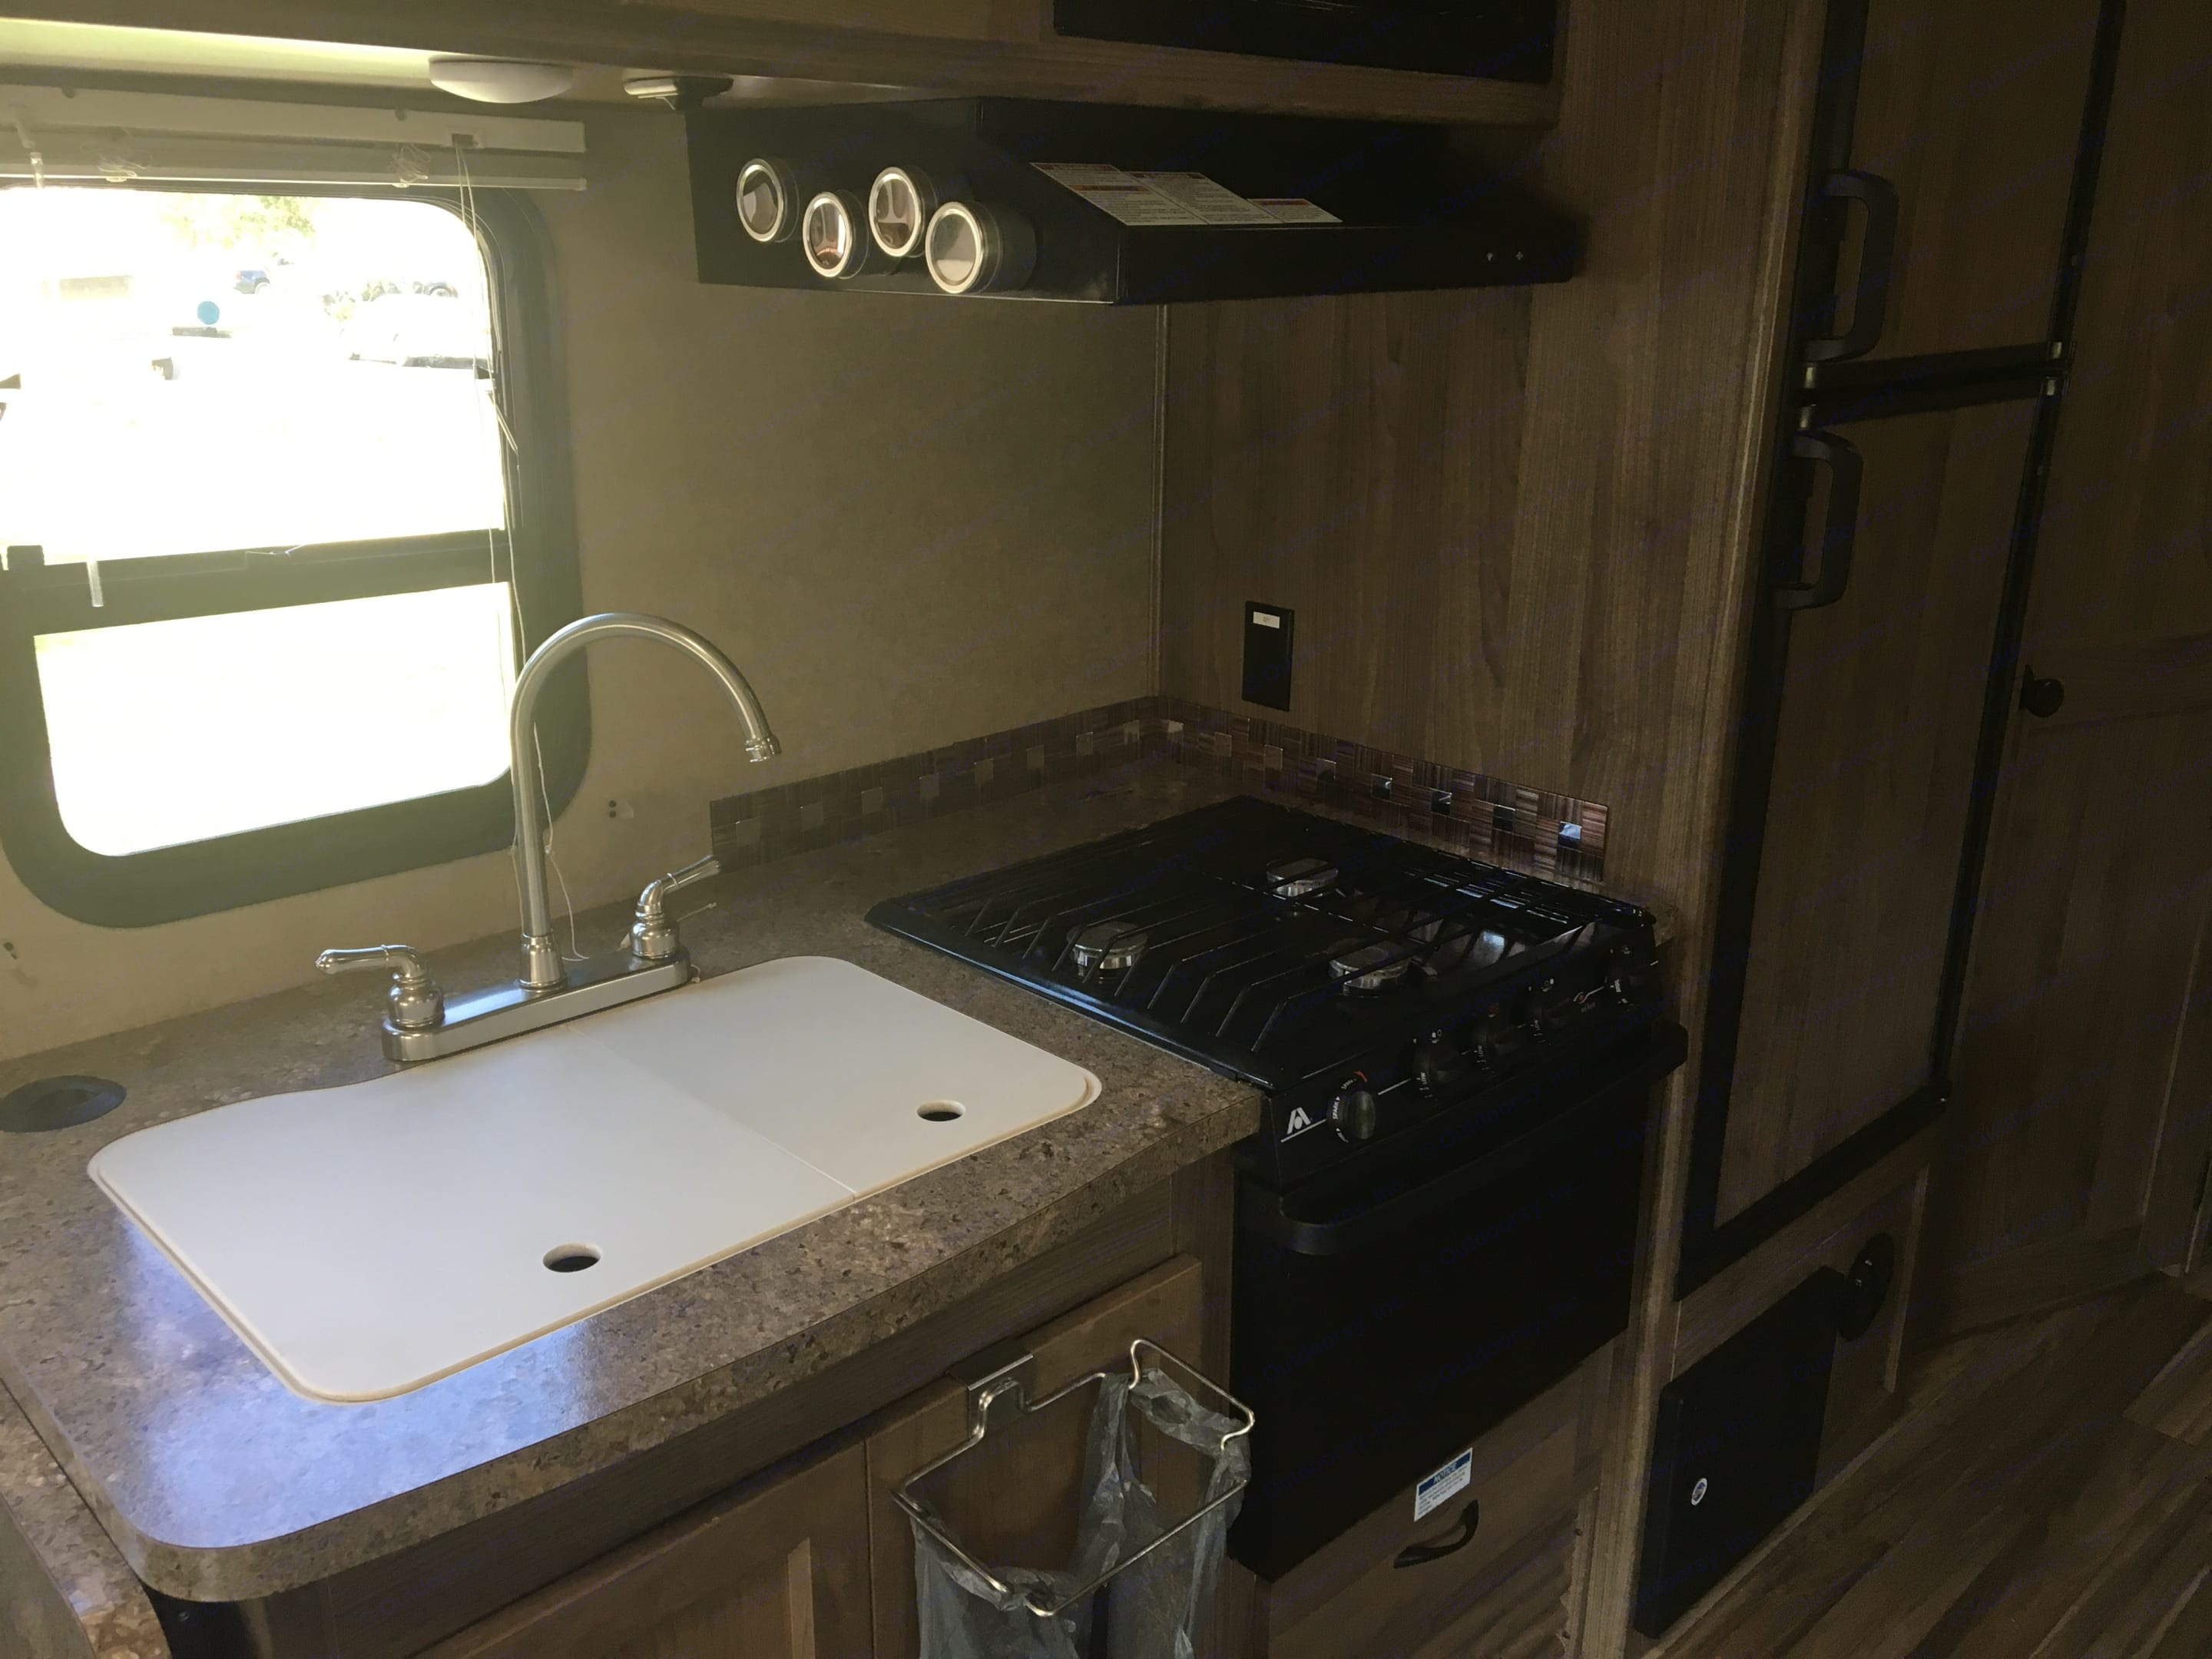 Great kitchen with stove, oven, big double sink and fold down extra counter space. Coachmen Prism 2017